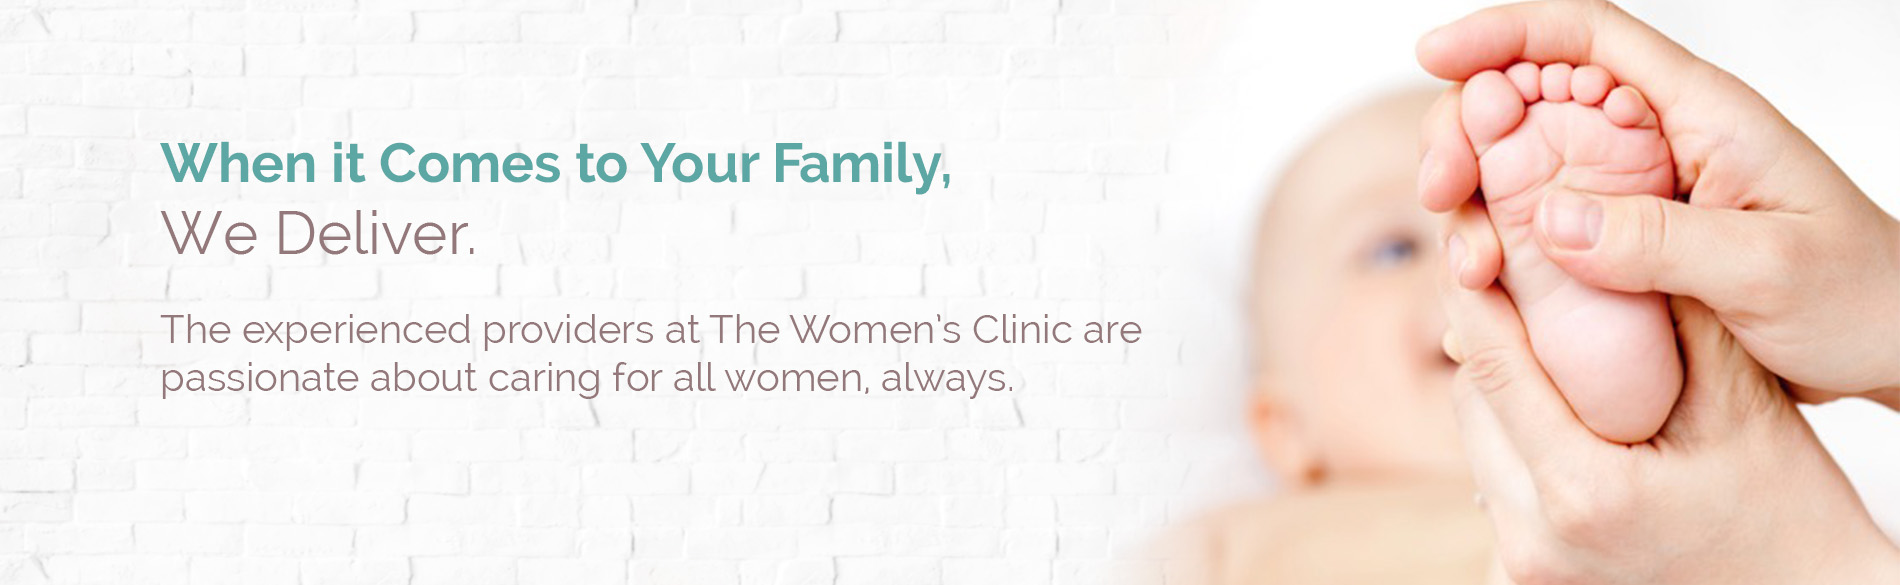 Women's Clinic of Northern Colorado